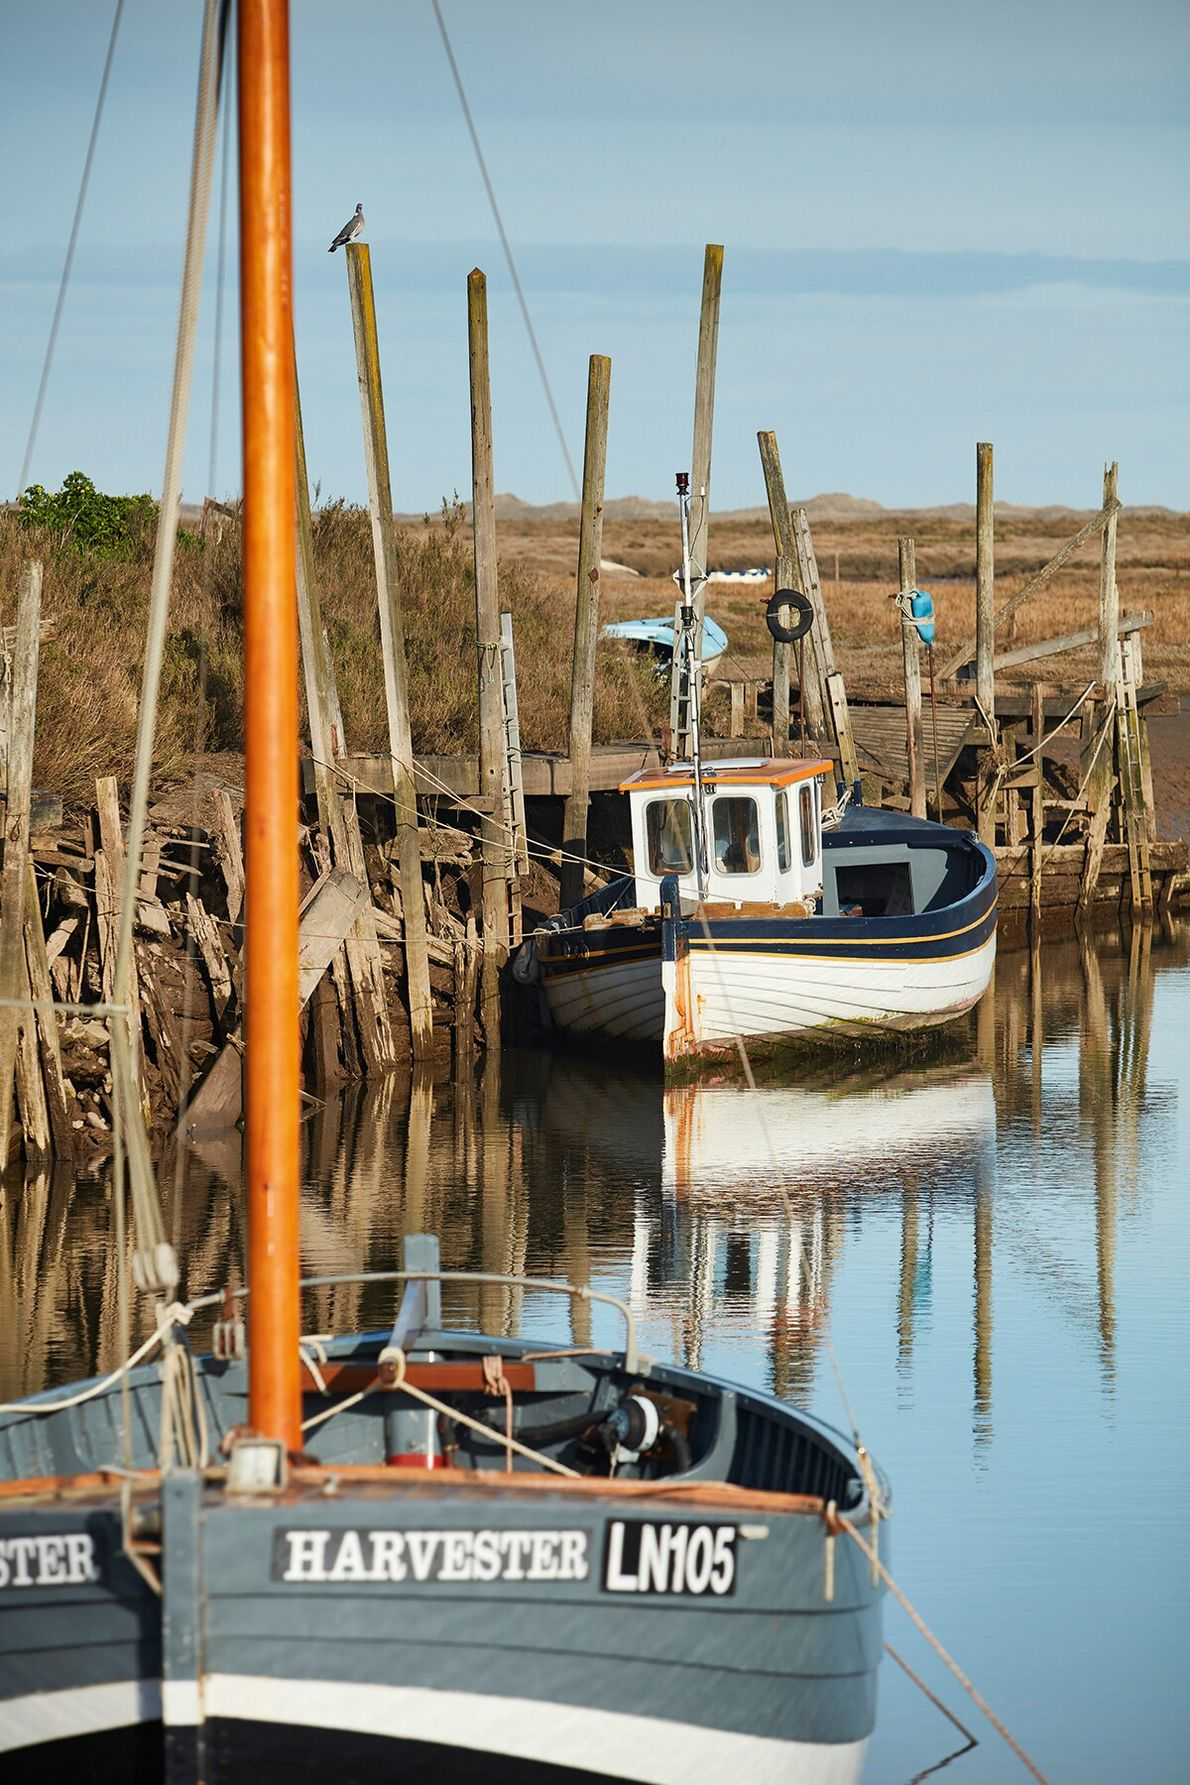 Boats moored in the shallows at Blakeney, a picturesque fishing village that was a busy seaport ...